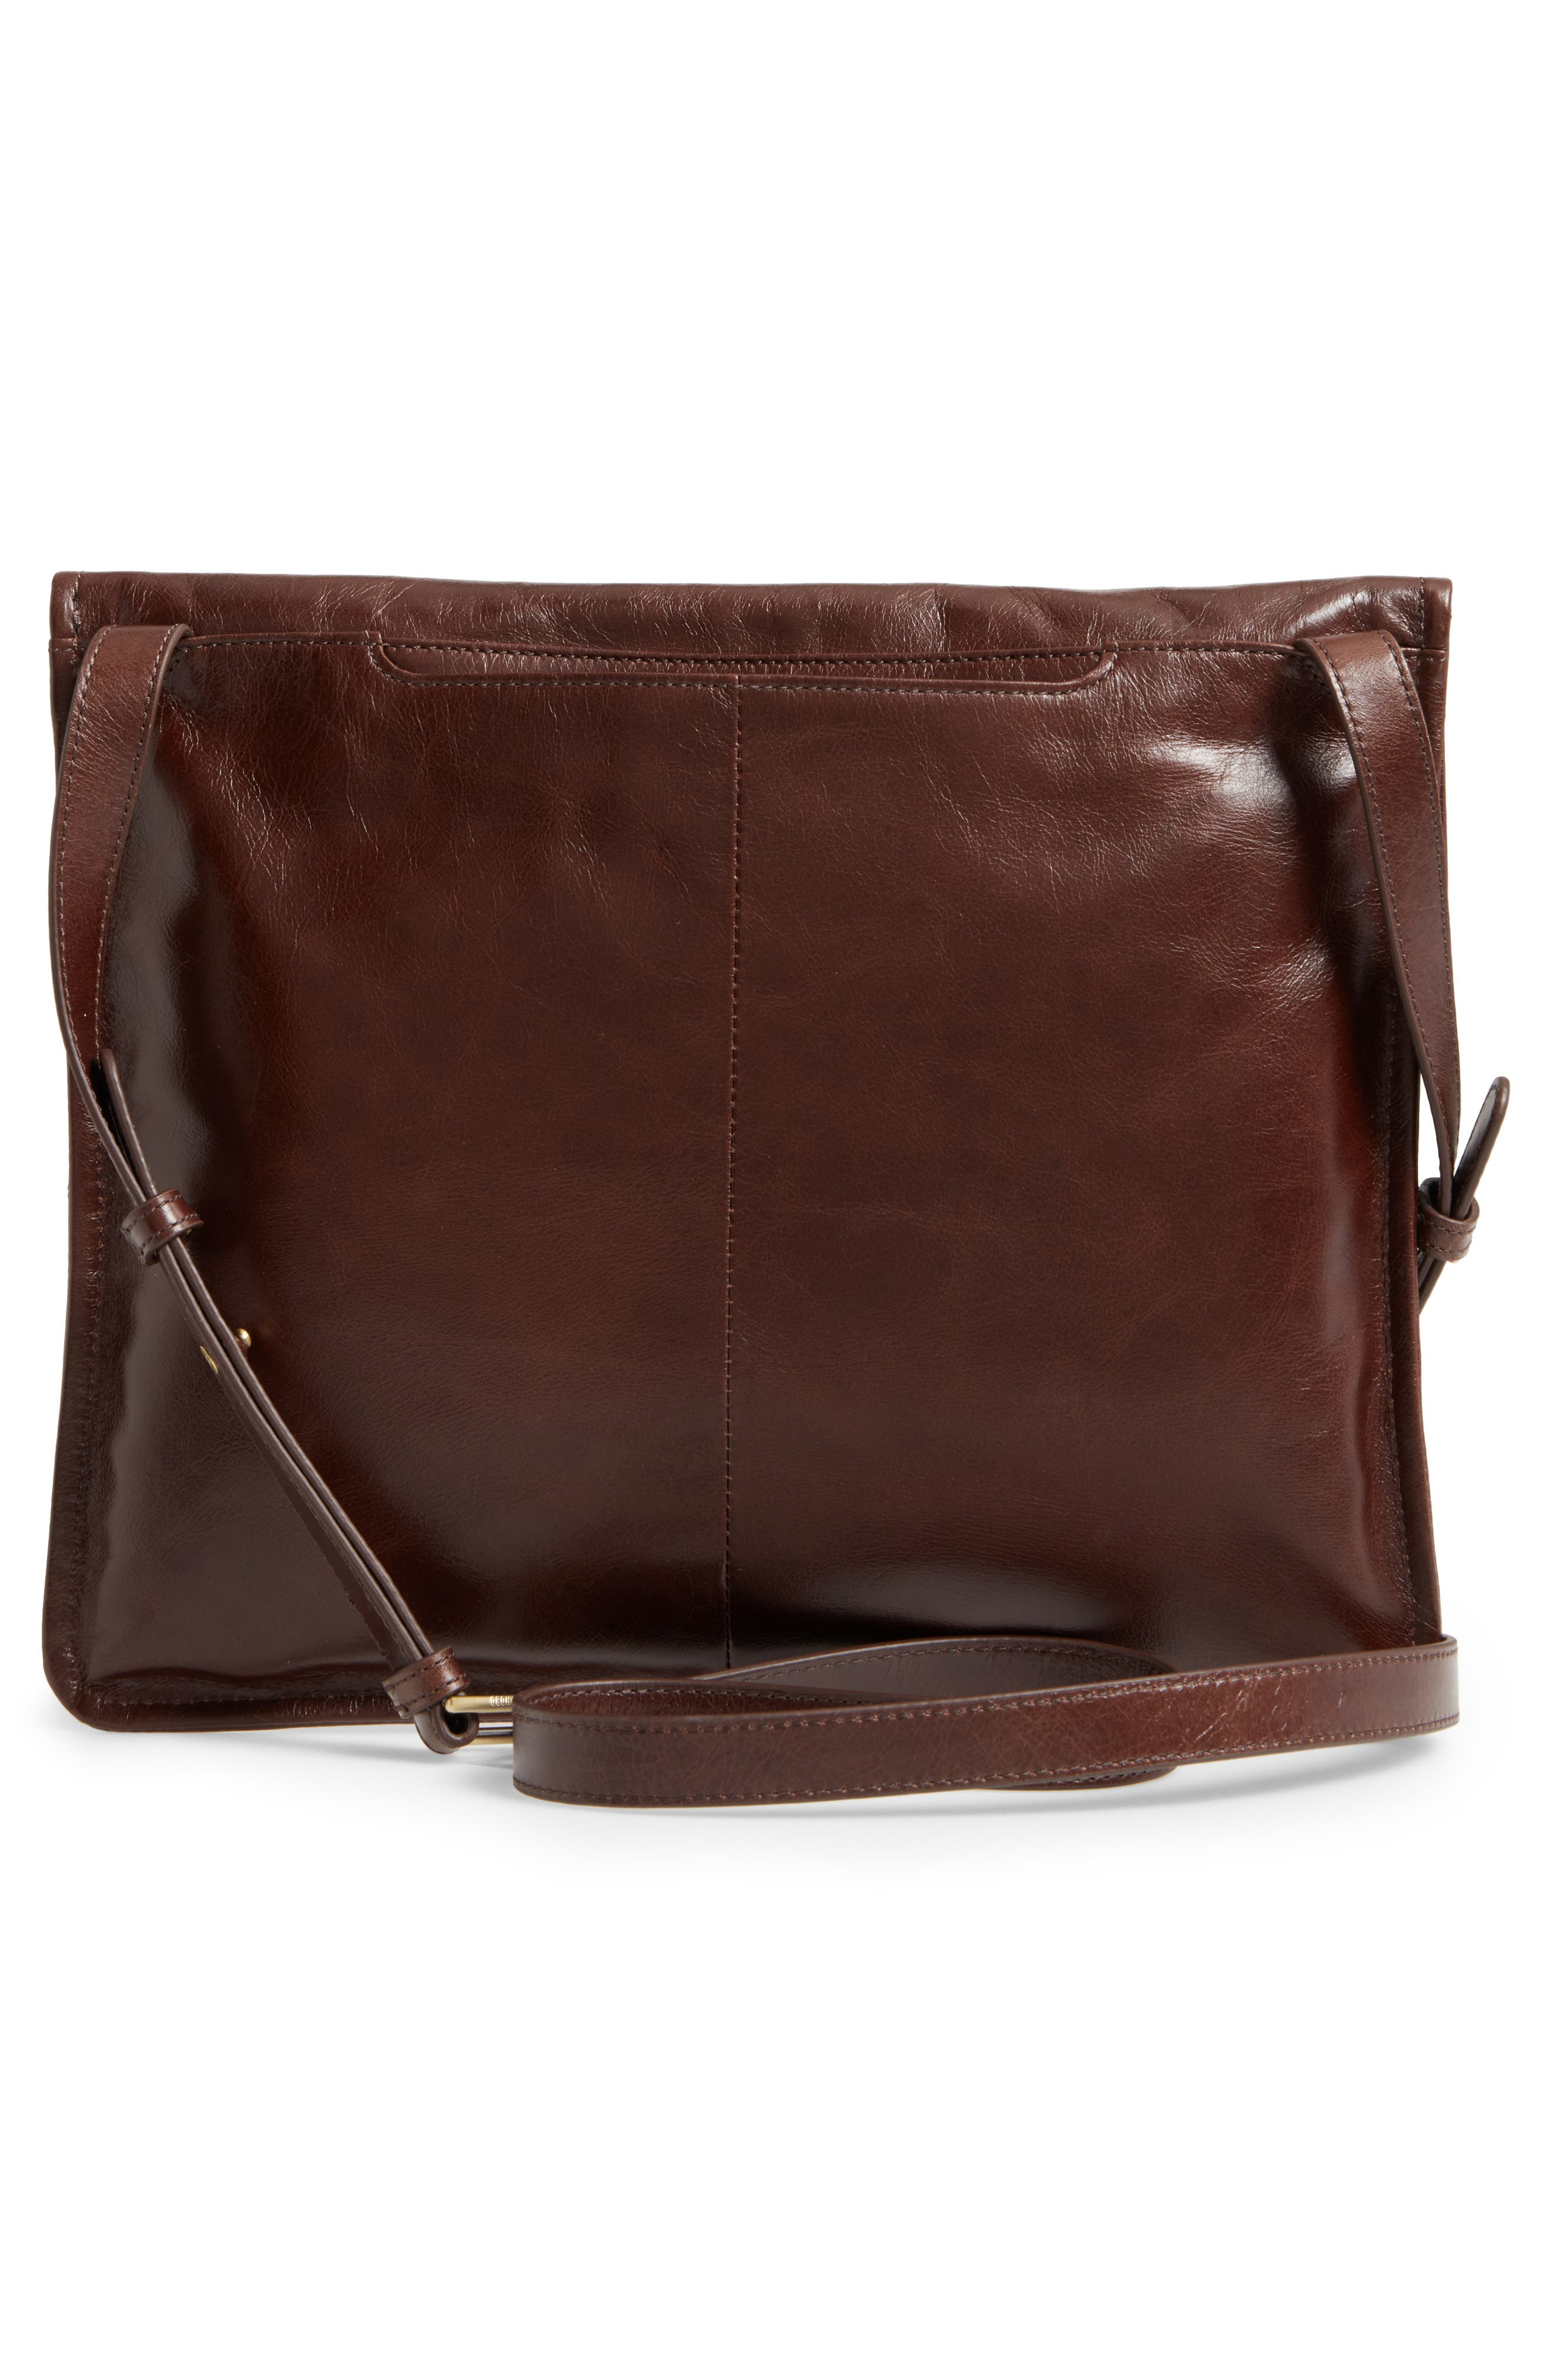 Vista Calfskin Leather Messenger Bag,                             Alternate thumbnail 11, color,